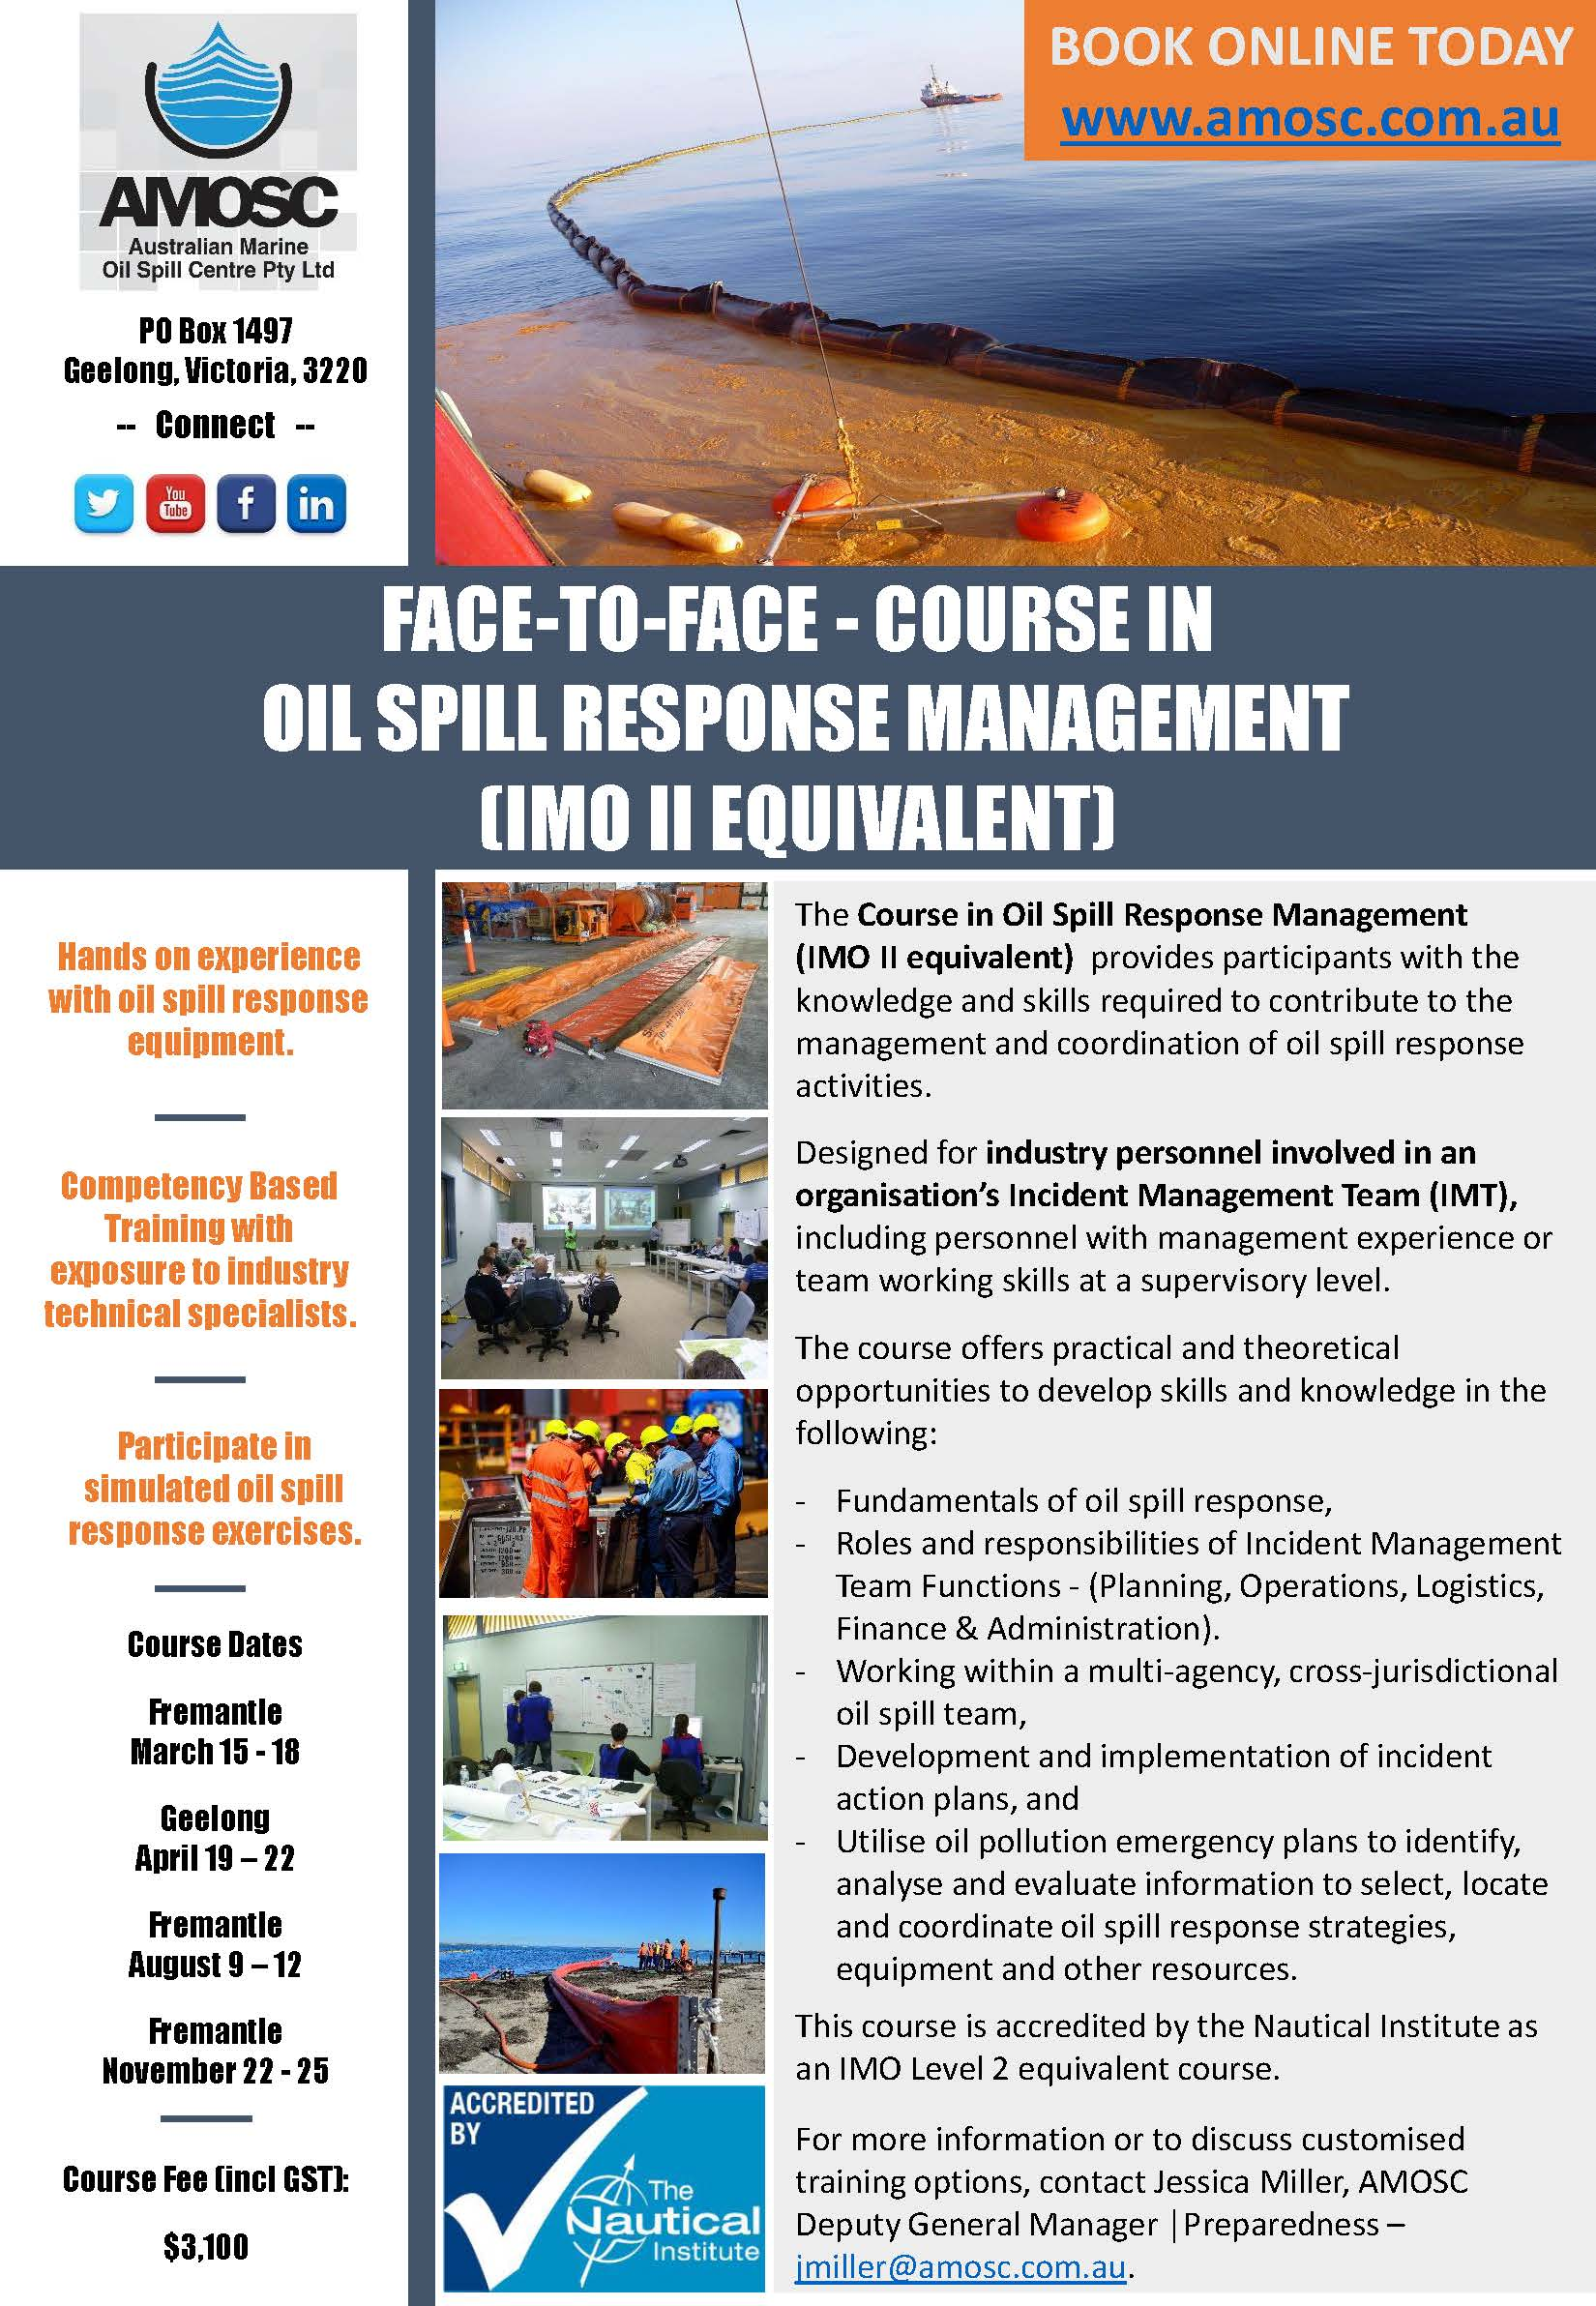 facetoface_imo-ii_management_2021